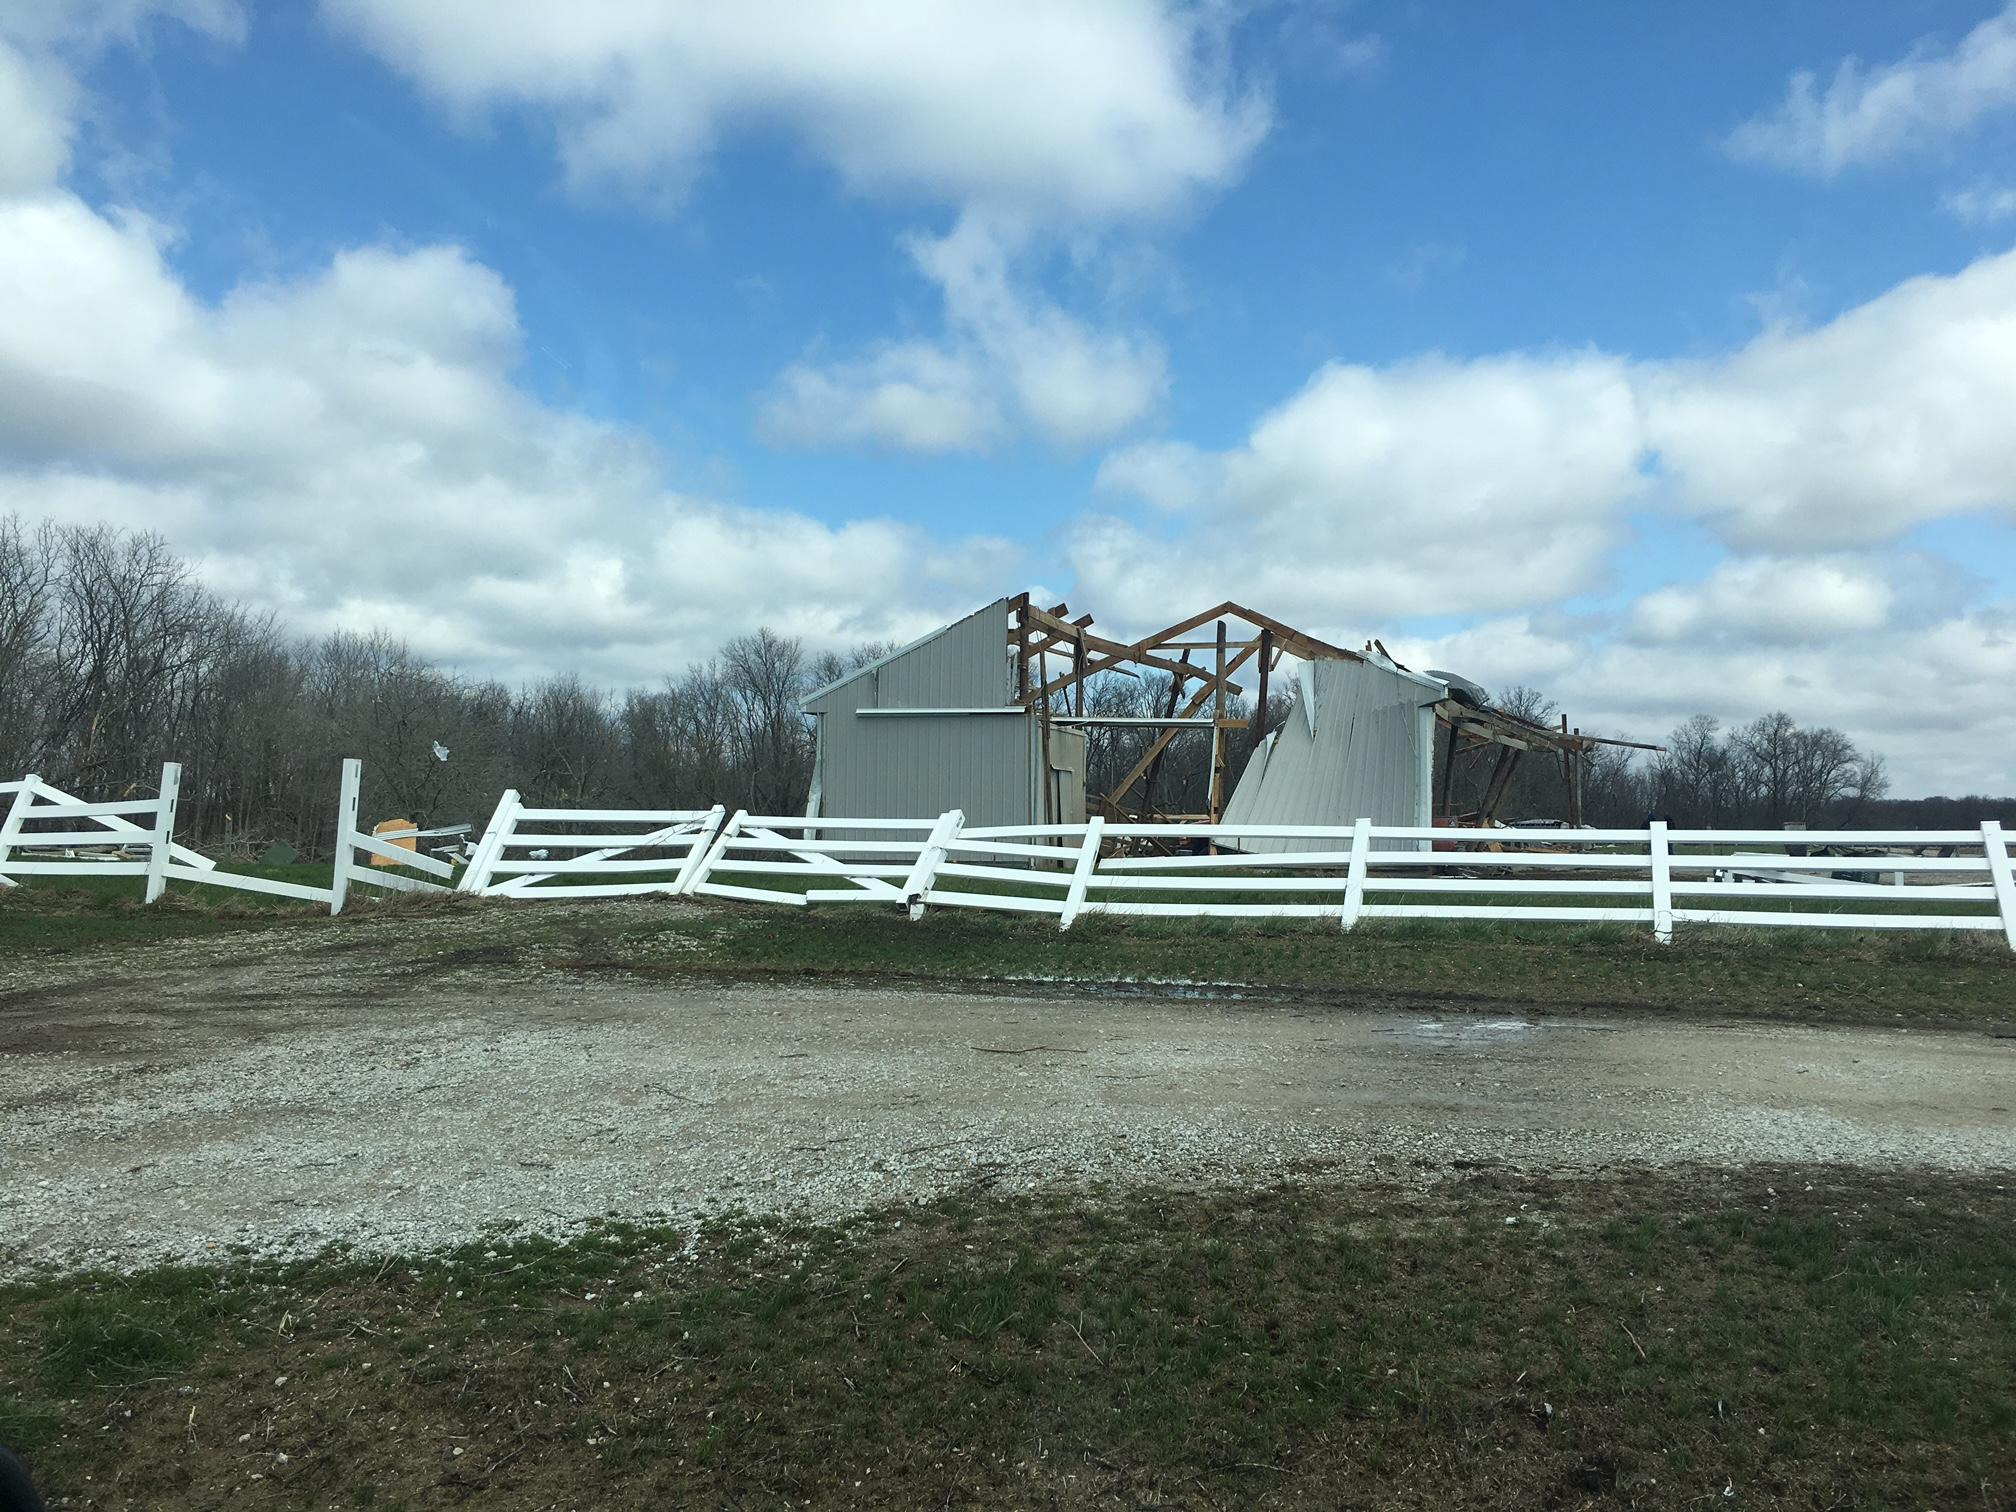 Tuesday's storms caused severe damage to several homes in Fayette County. (Nikki McGee)